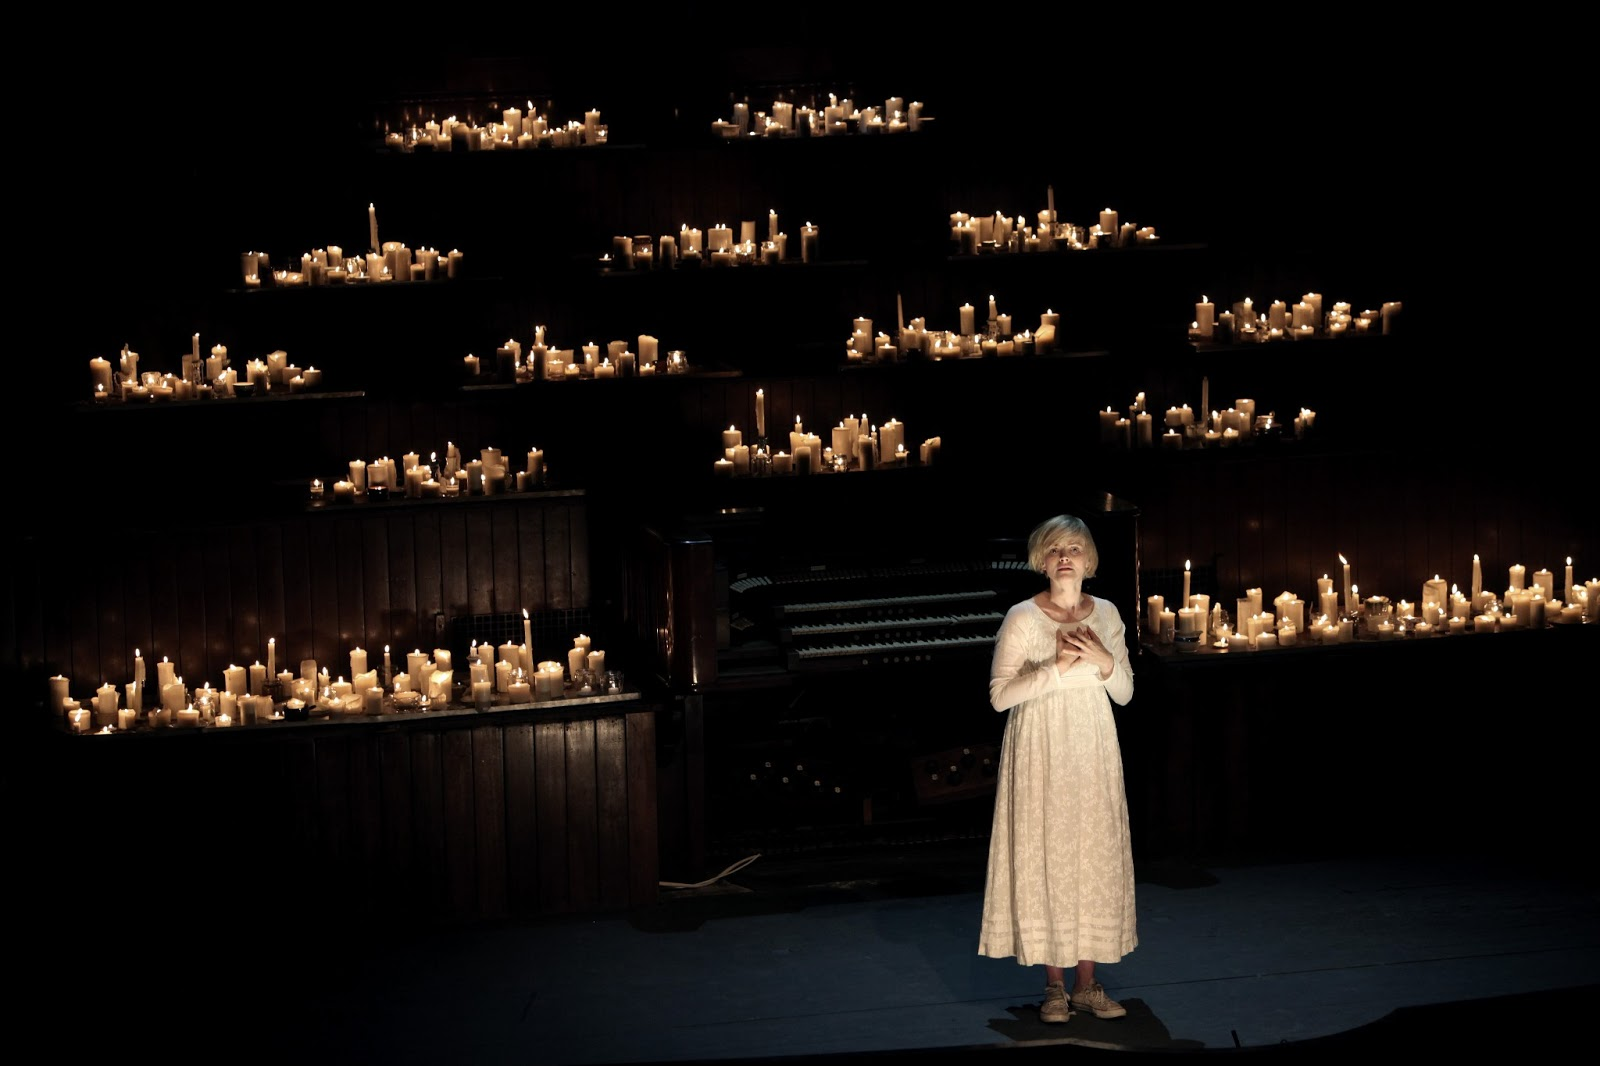 now then manchester the masque of anarchy albert hall  maxine peake takes the stage carrying a night light and places it in front of a thousand candles which form the main part of the stage lighting